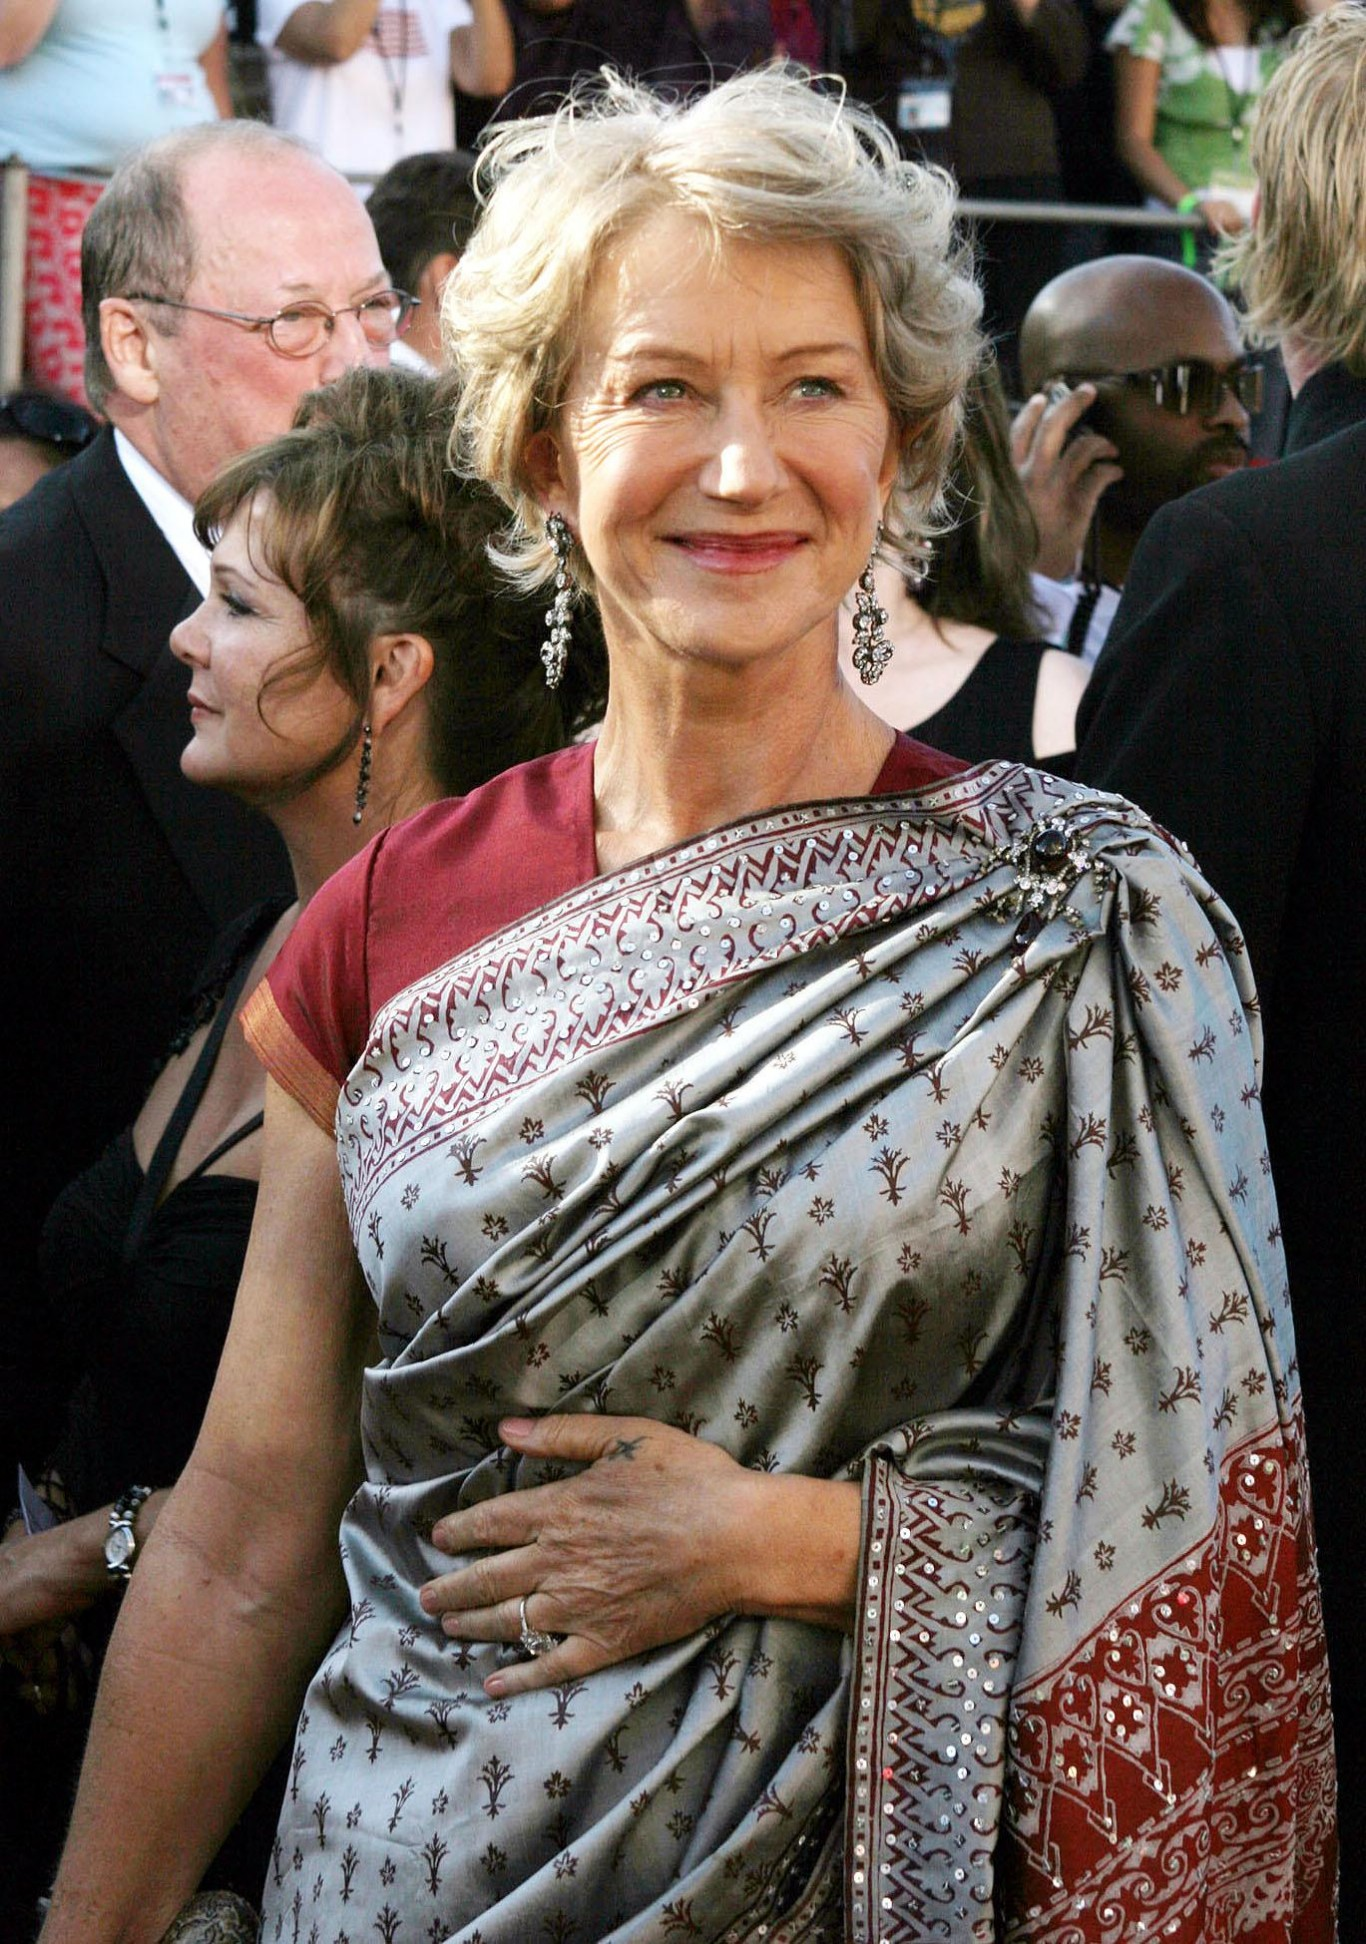 Helen Mirren arrives for the 56th Annual Emmy Awards in 2004